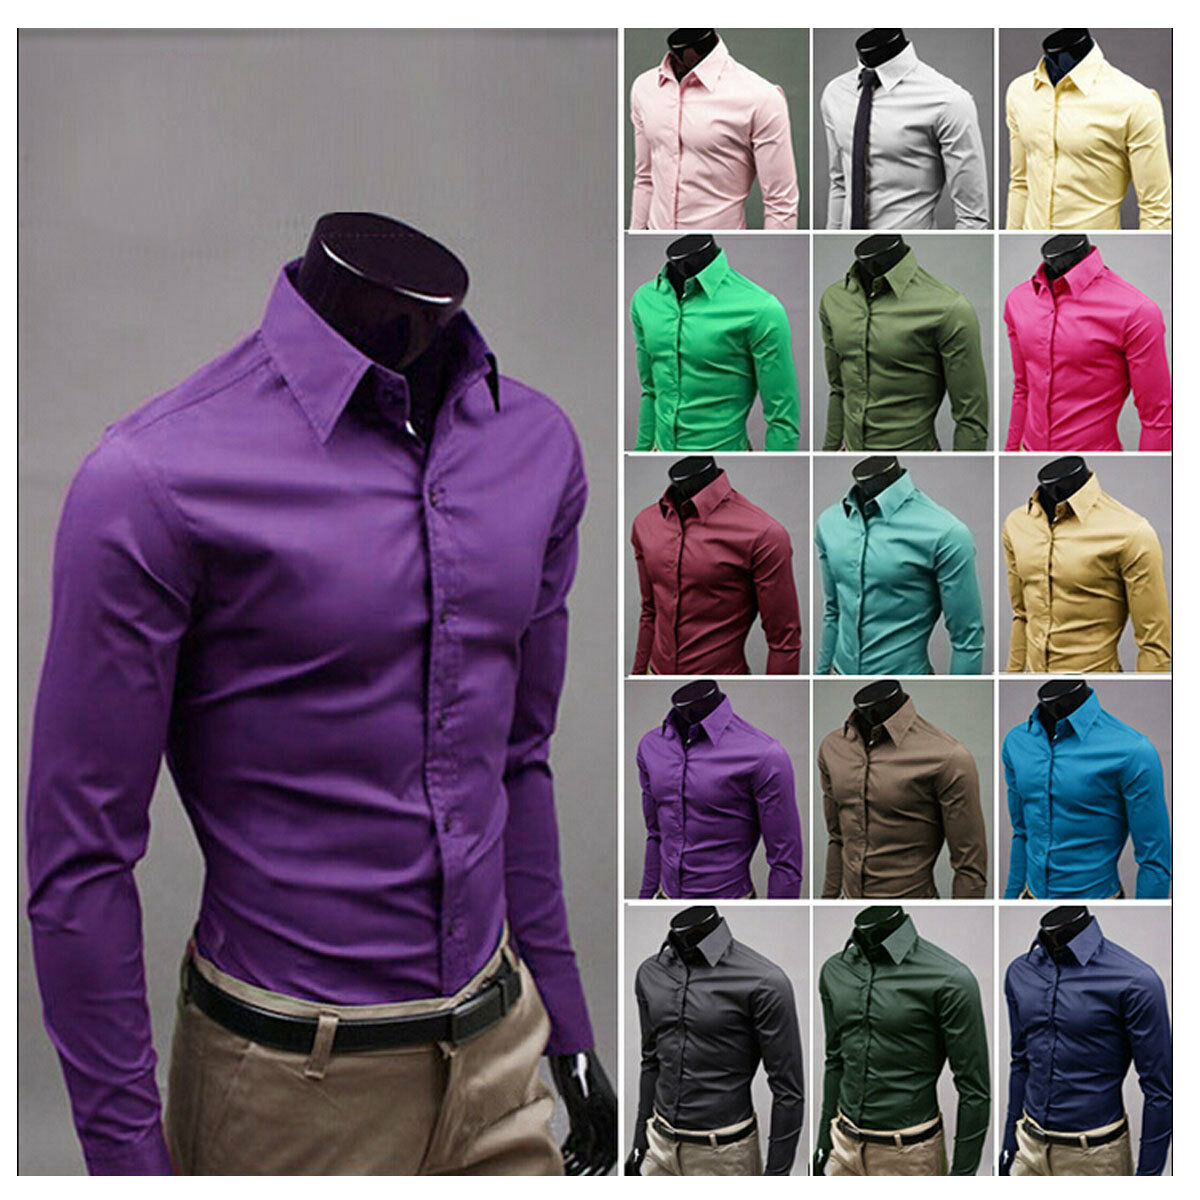 $6.13 - Fashion Mens Luxury Stylish Casual Dress Slim Fit T-Shirts Casual Long Sleeve US